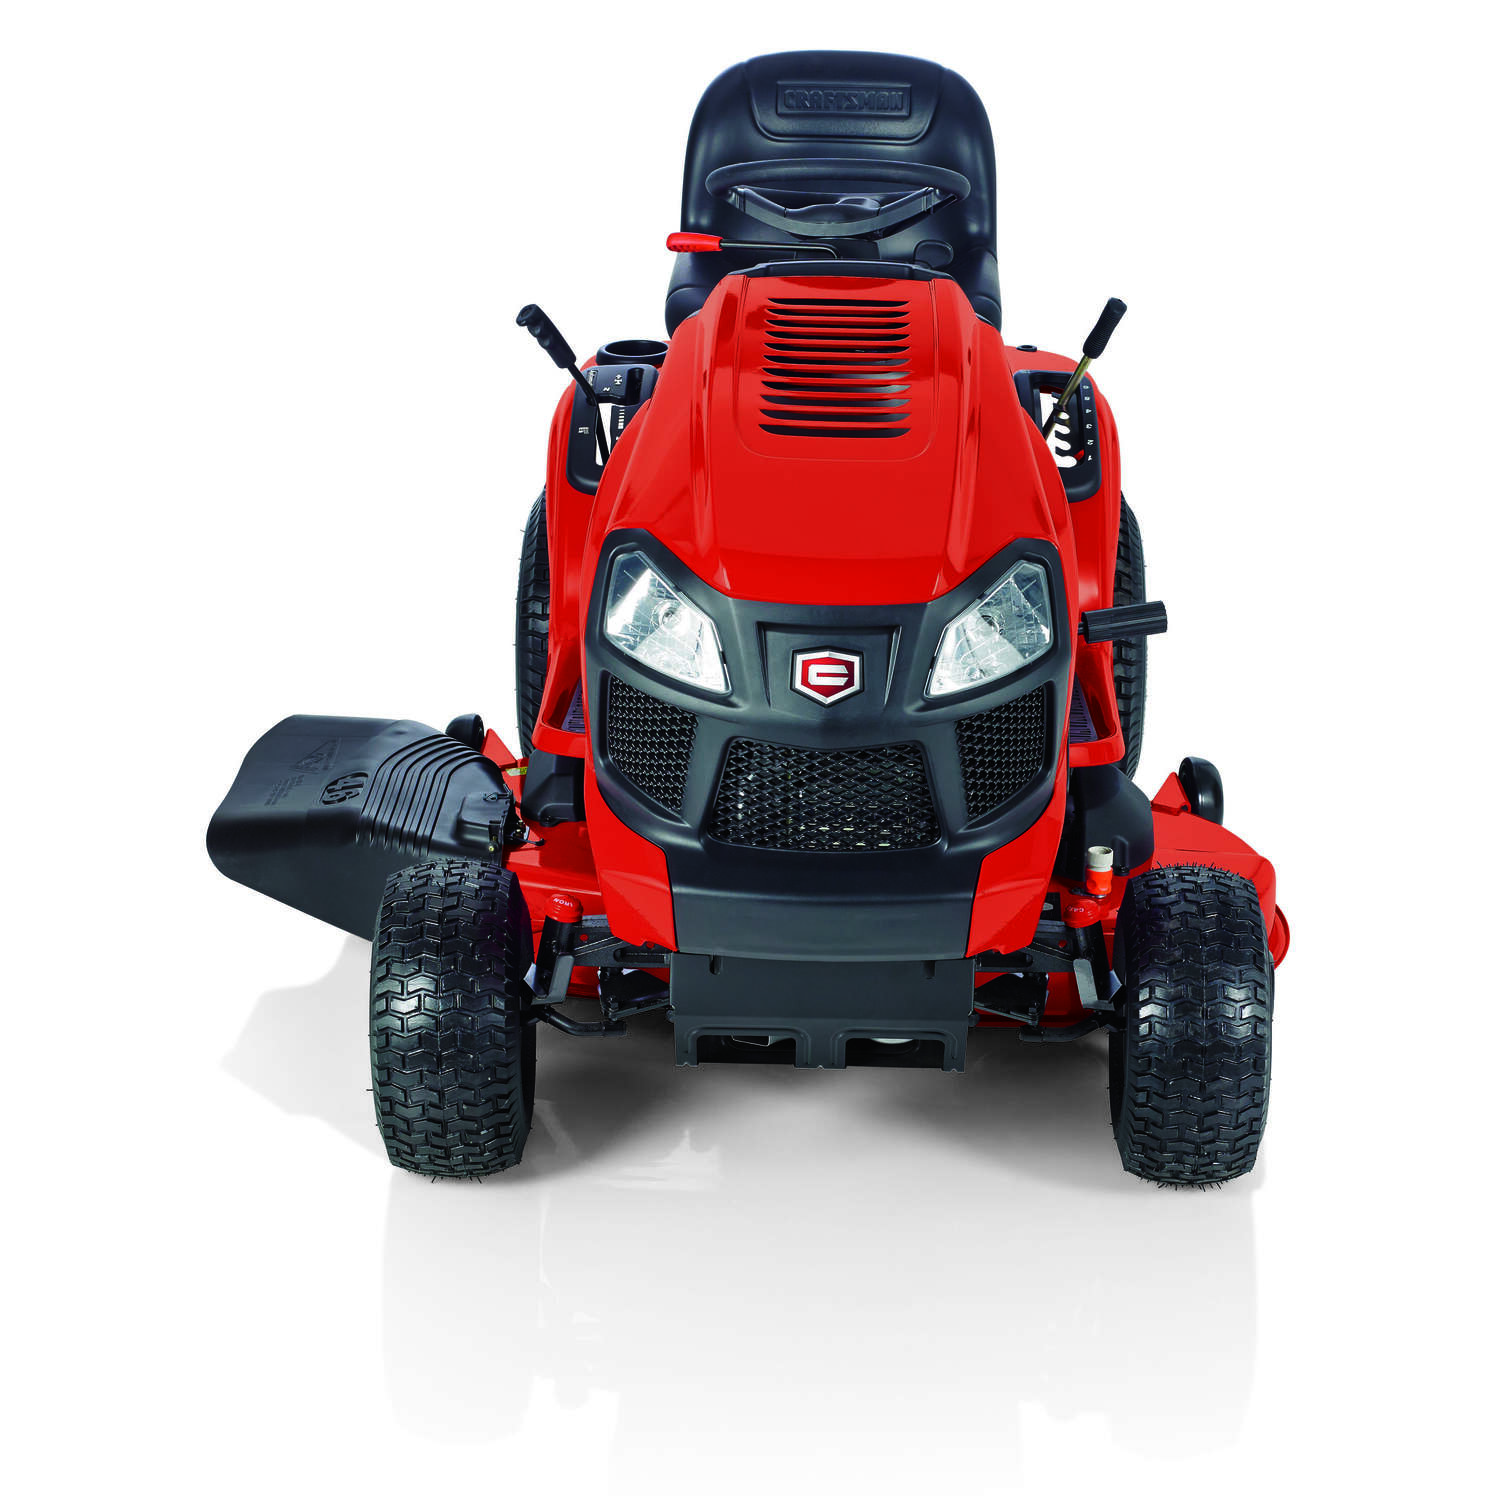 Craftsman  46 in. W 540 cc Mulching Capability Lawn Tractor  Riding